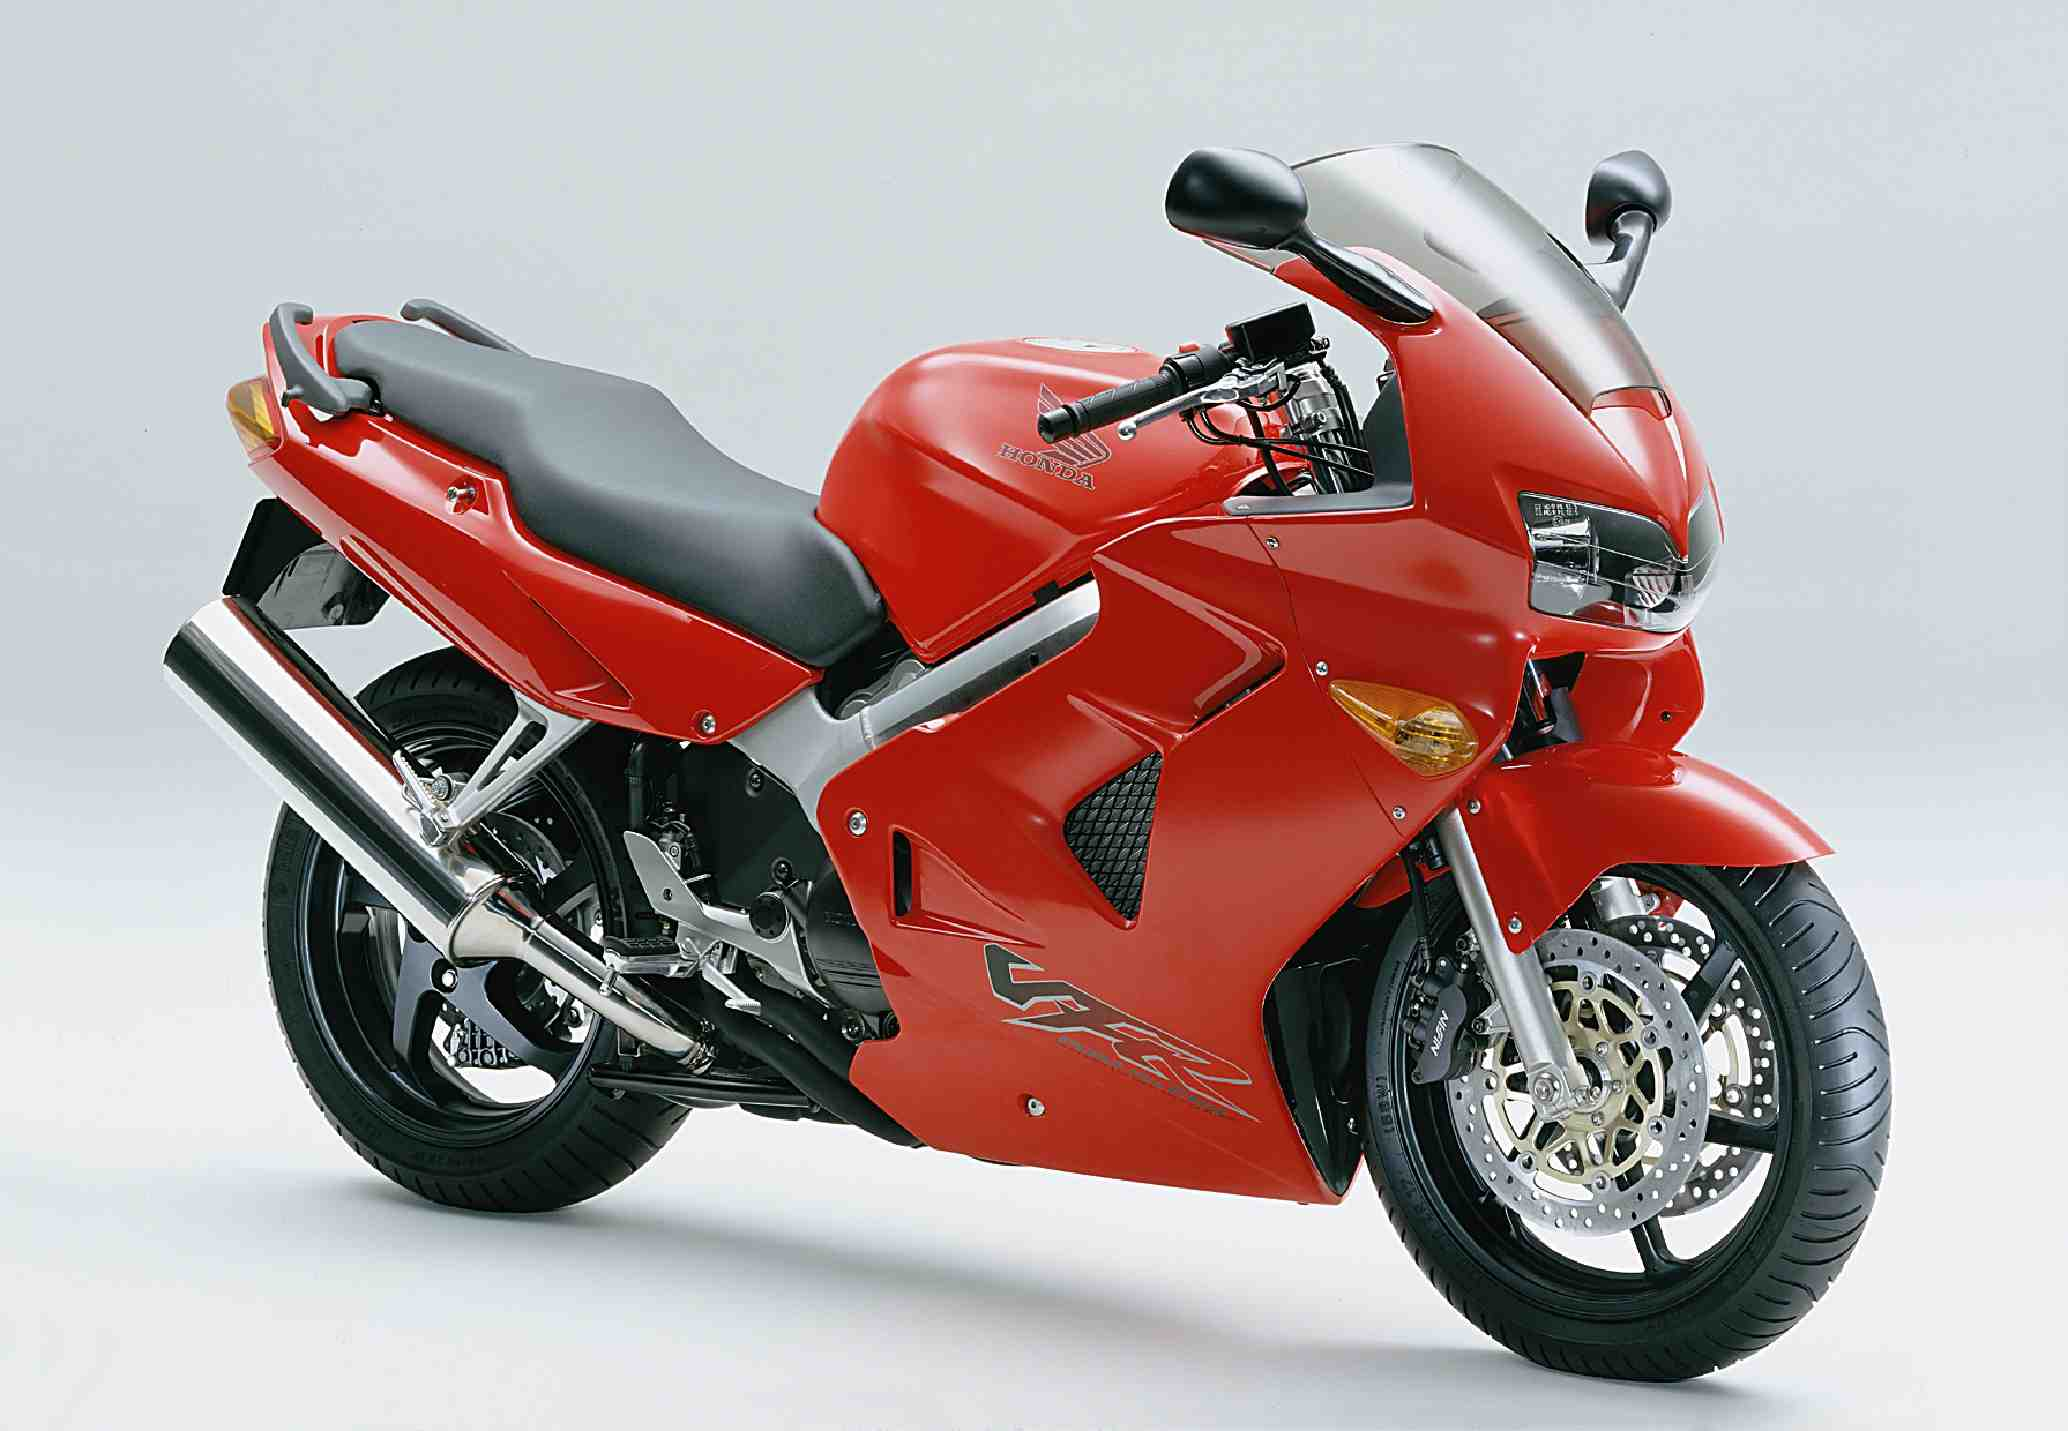 Honda VFR800, VFR800ABS, Interceptor 800 VTEC Motorcycle Workshop Service  Repair Manual 2002-2013